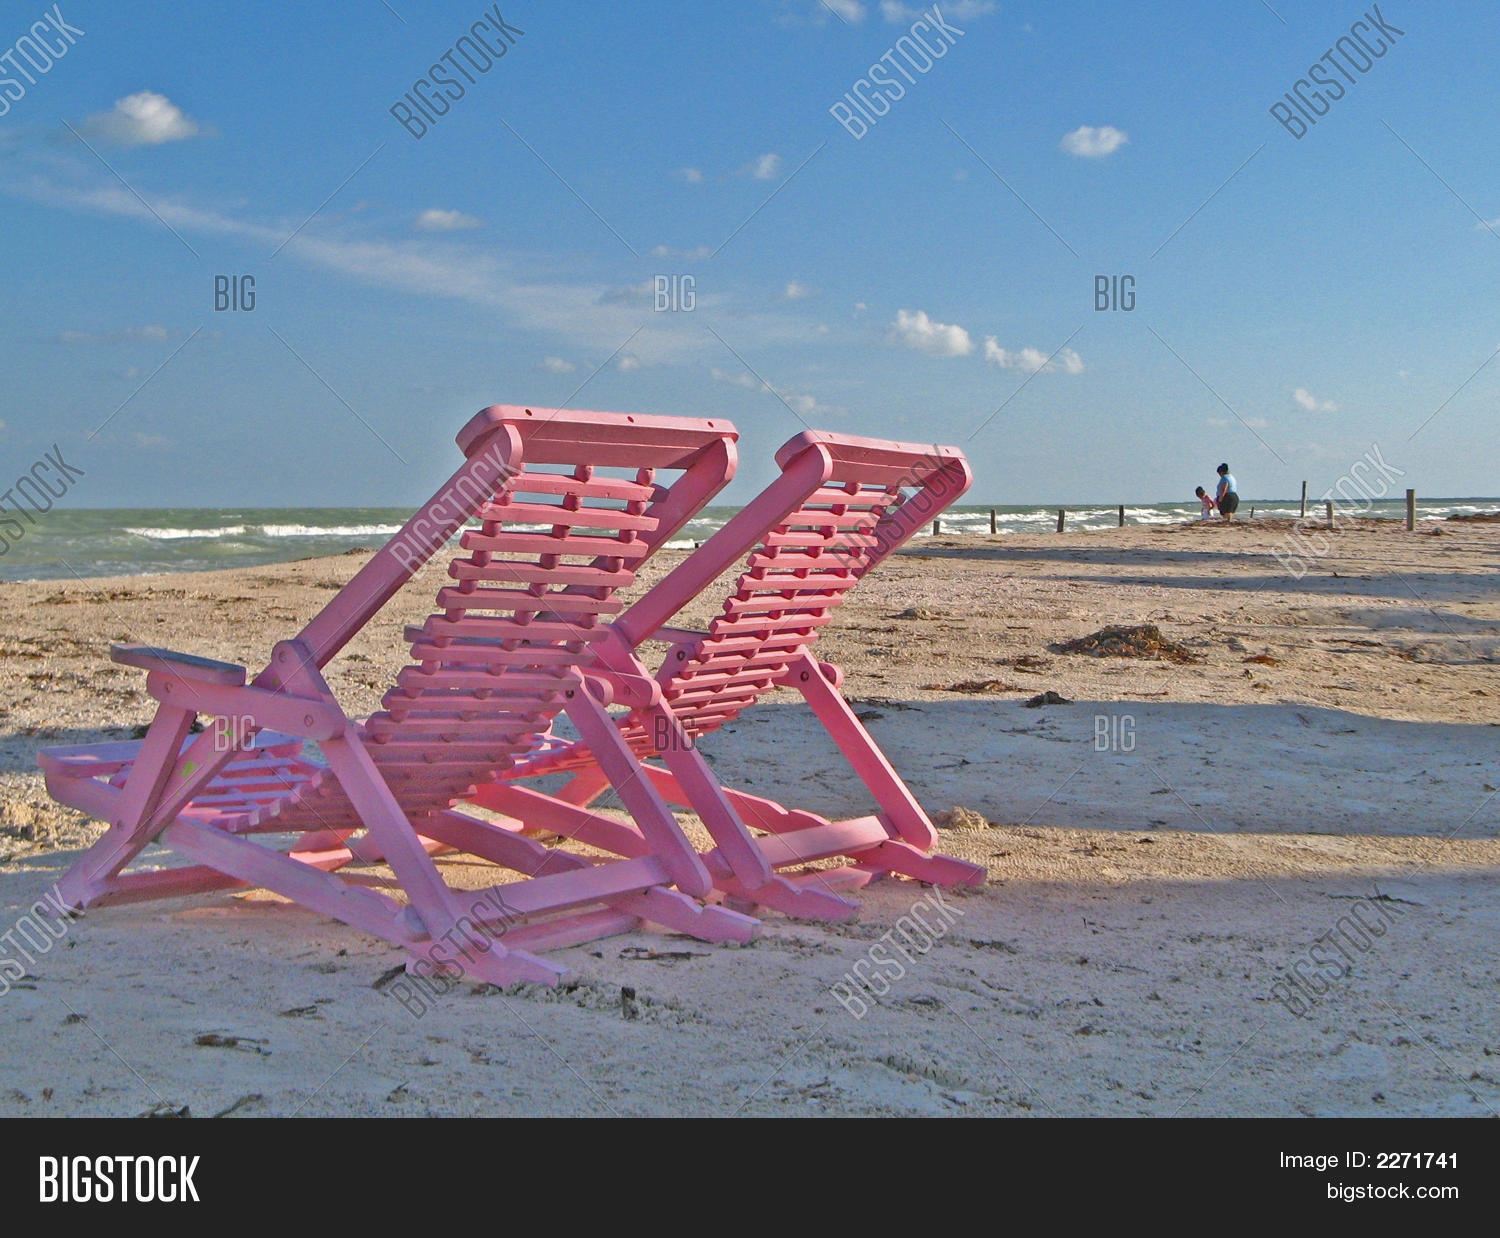 pink beach chair cheap plastic lounge chairs image and photo bigstock